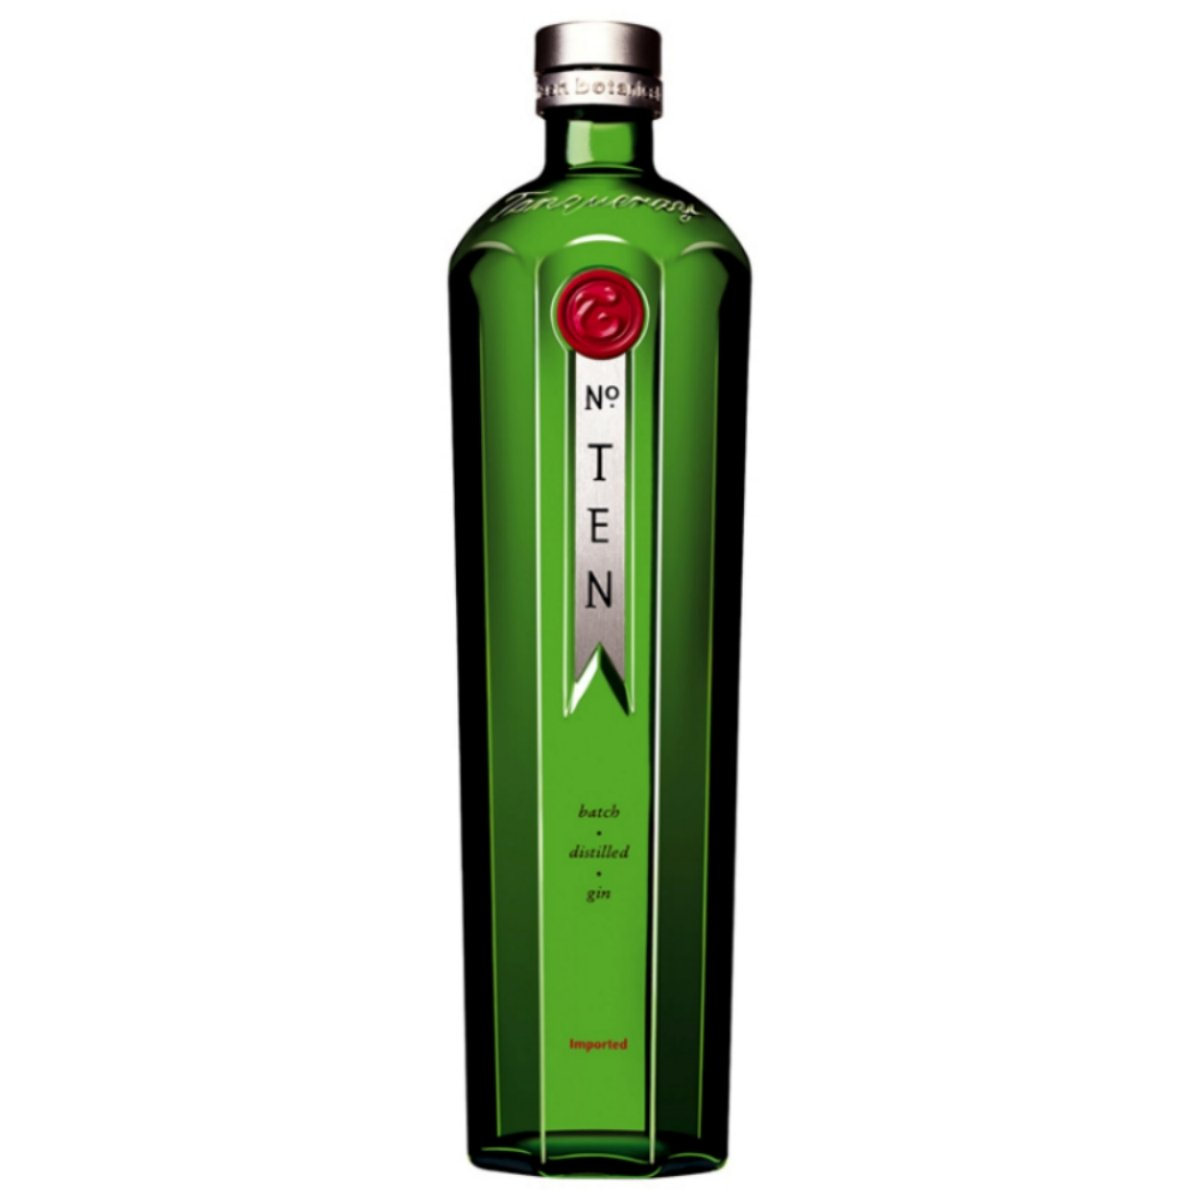 Tanqueray No 10 Batch Distilled Gin 1l